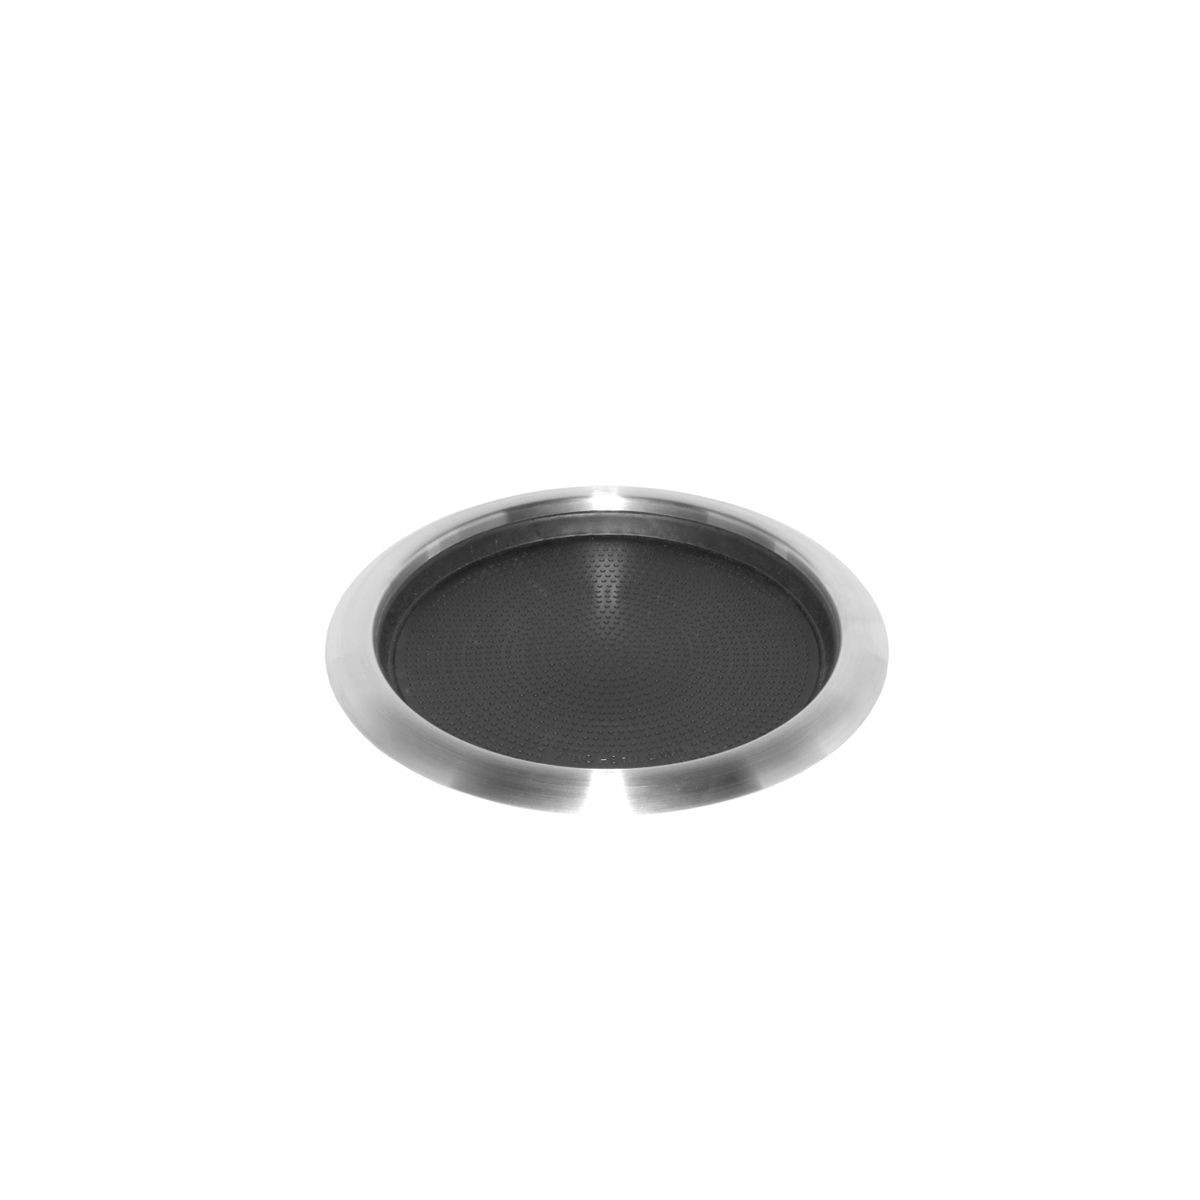 Service Ideas TR119RI Non-Slip Tray with Rubber Insert and Molded Grips, Stainless 11""